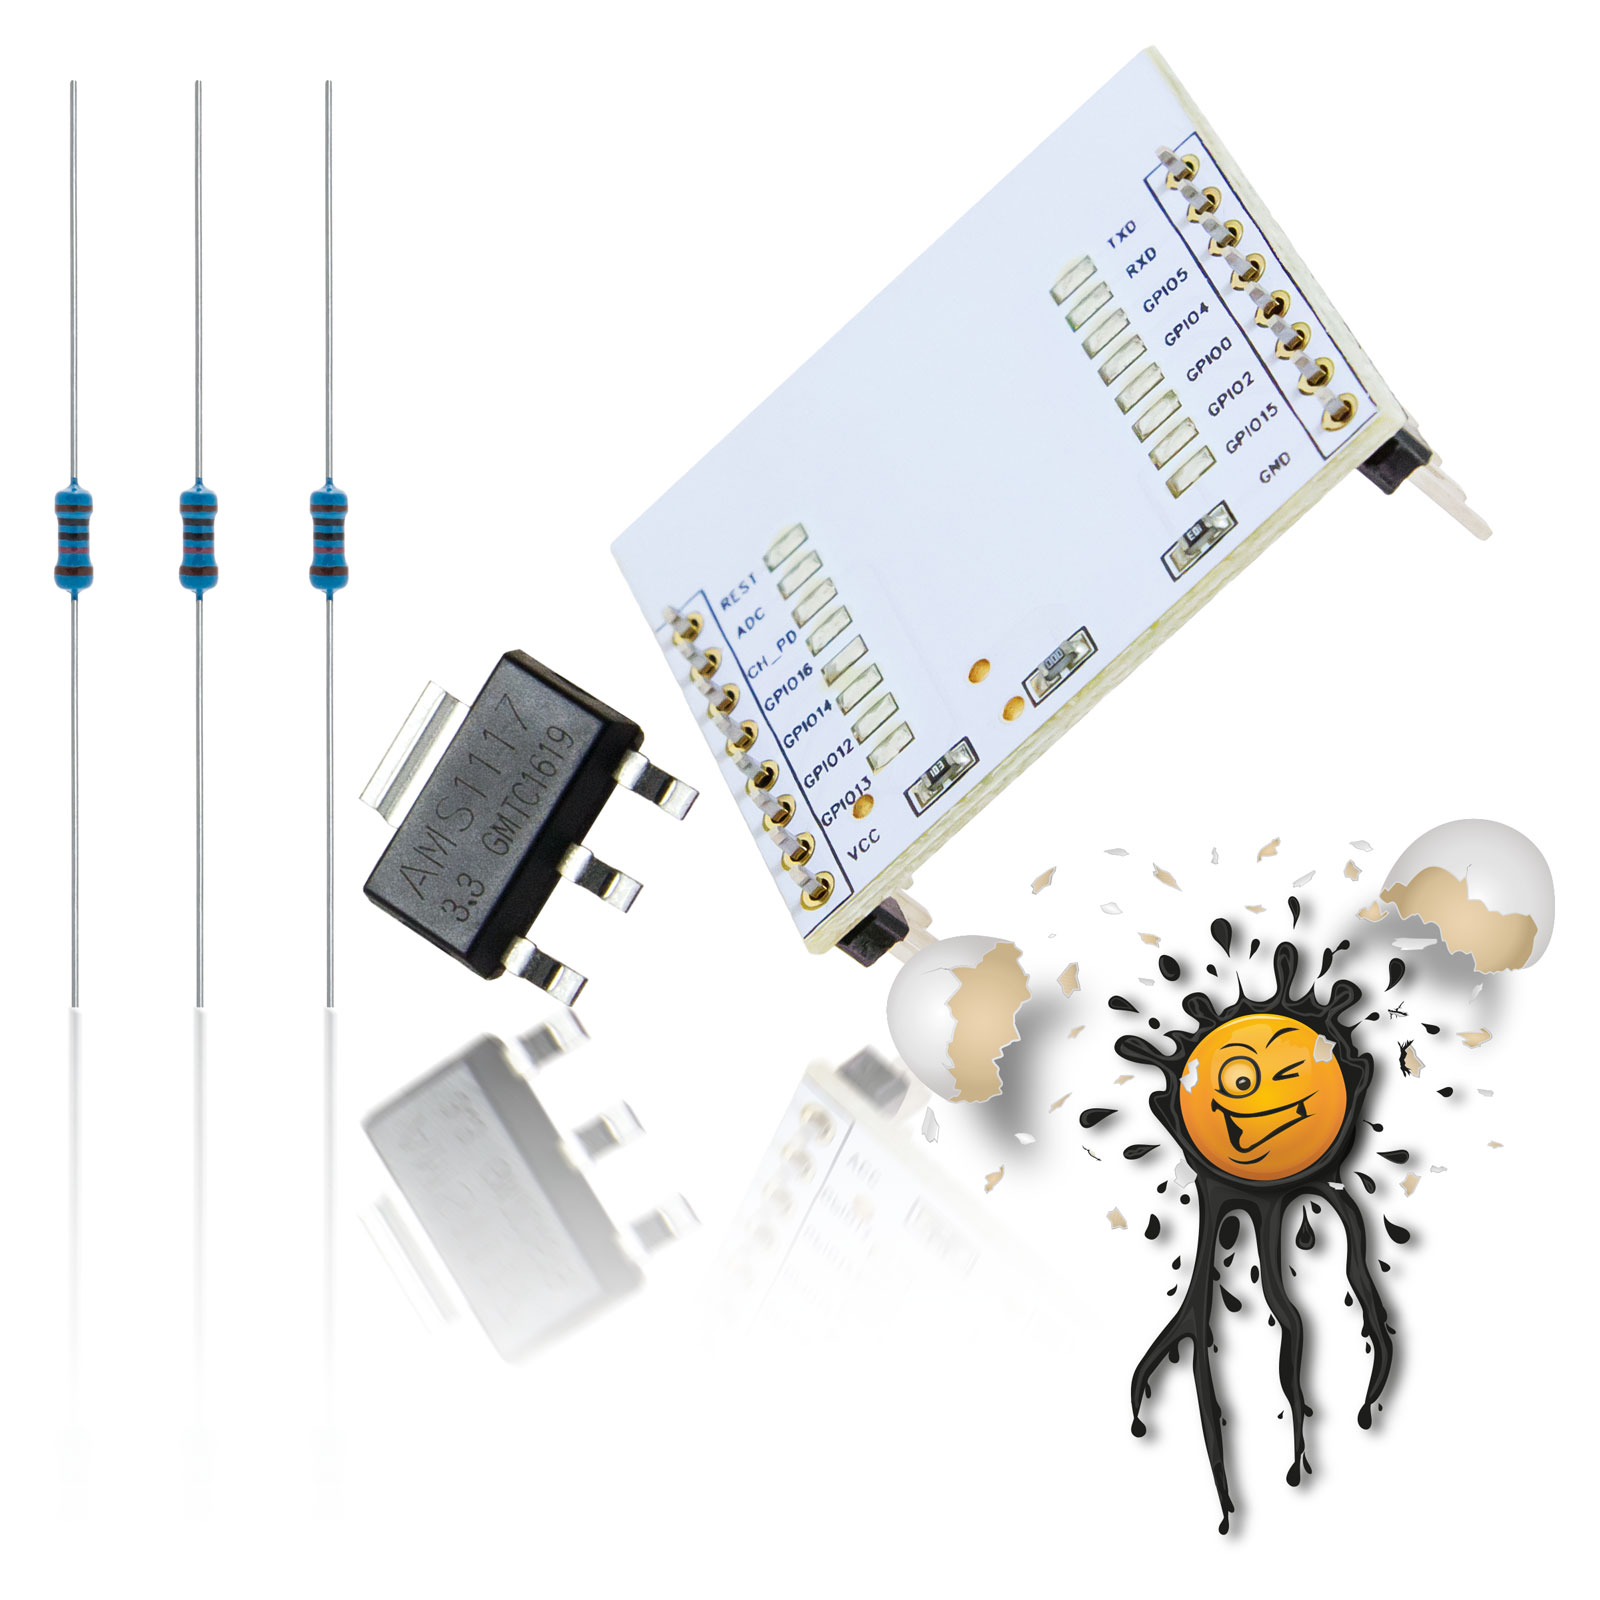 ESP8266 I/O Adapter + AMS1117 Voltage Converter + Resistors Set